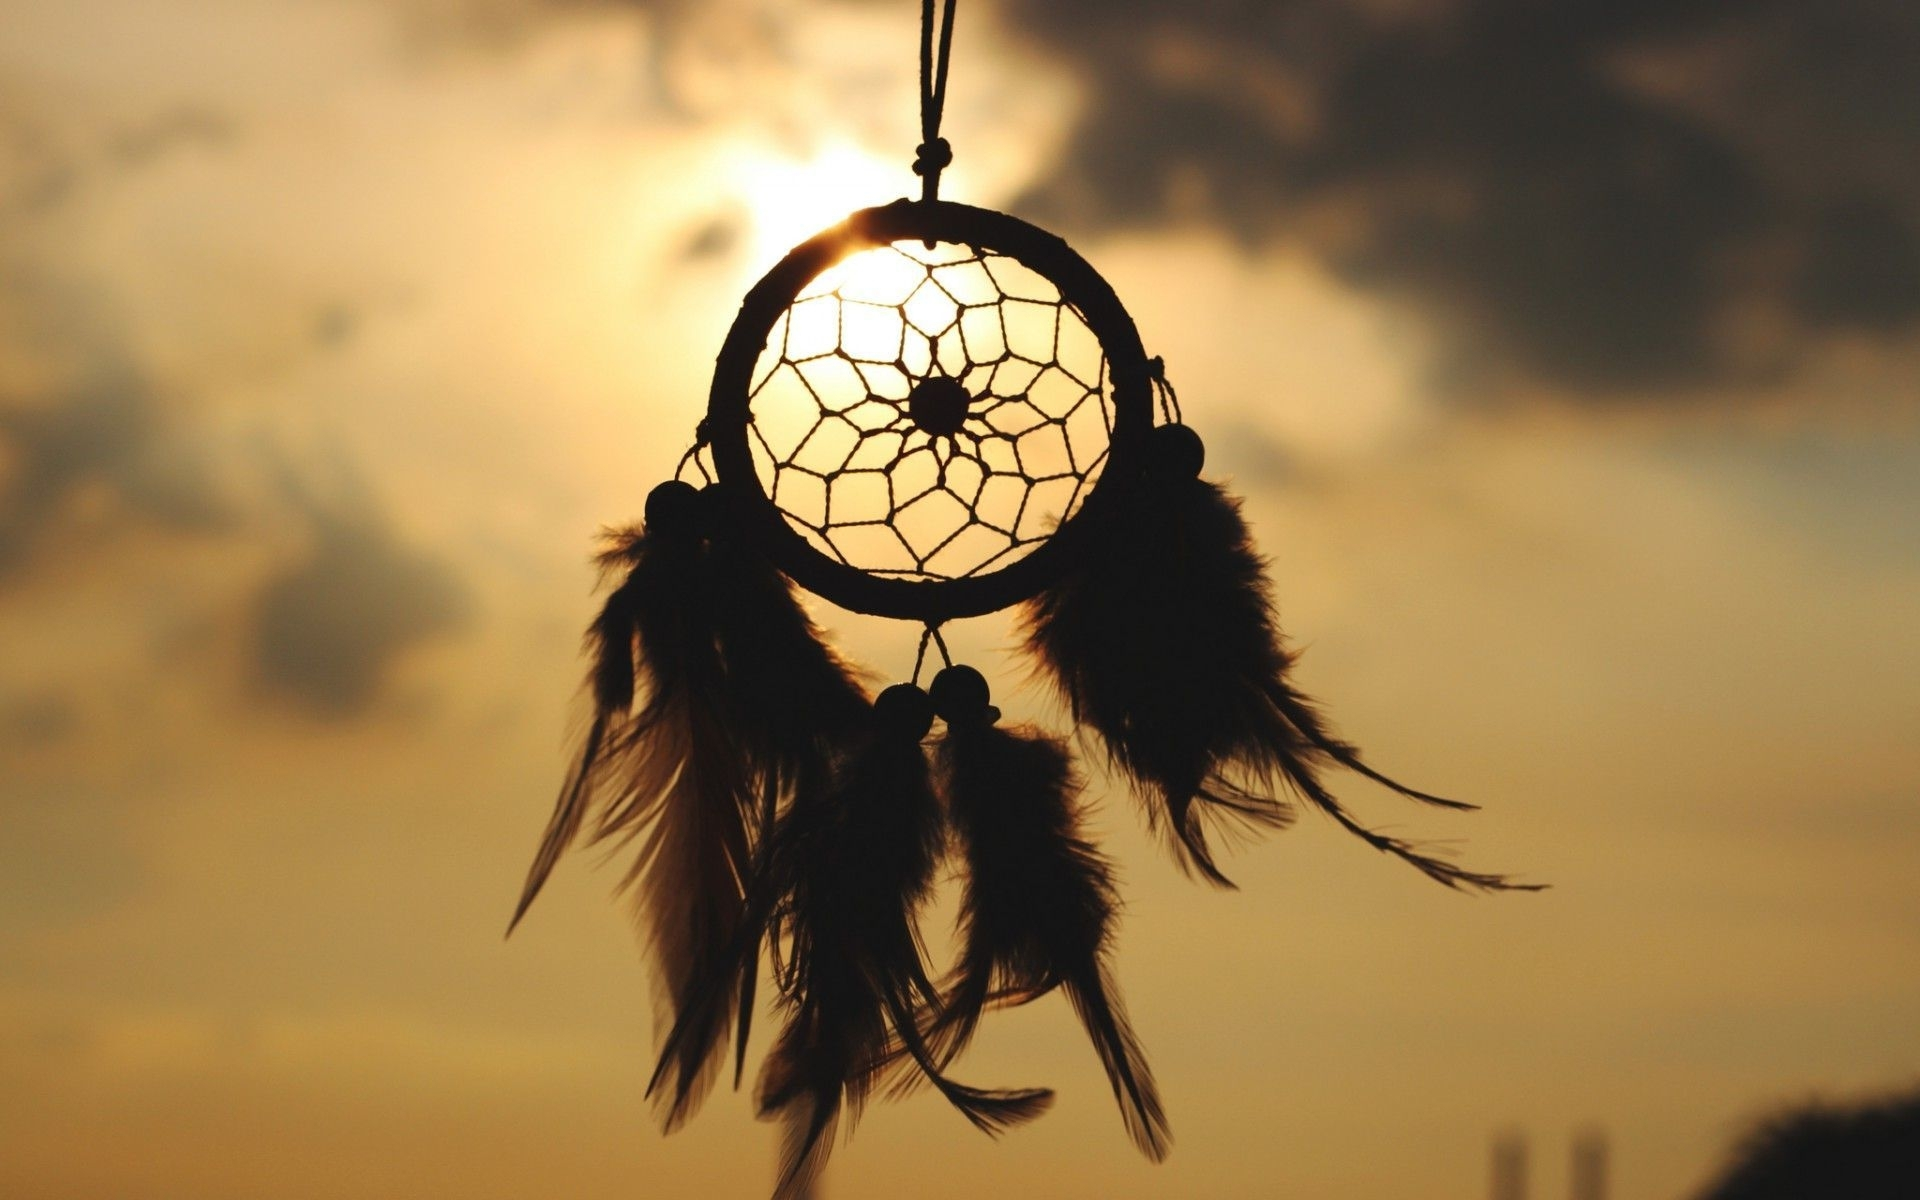 dreamcatcher-wallpapers-hd-images-download - wallpaper.wiki